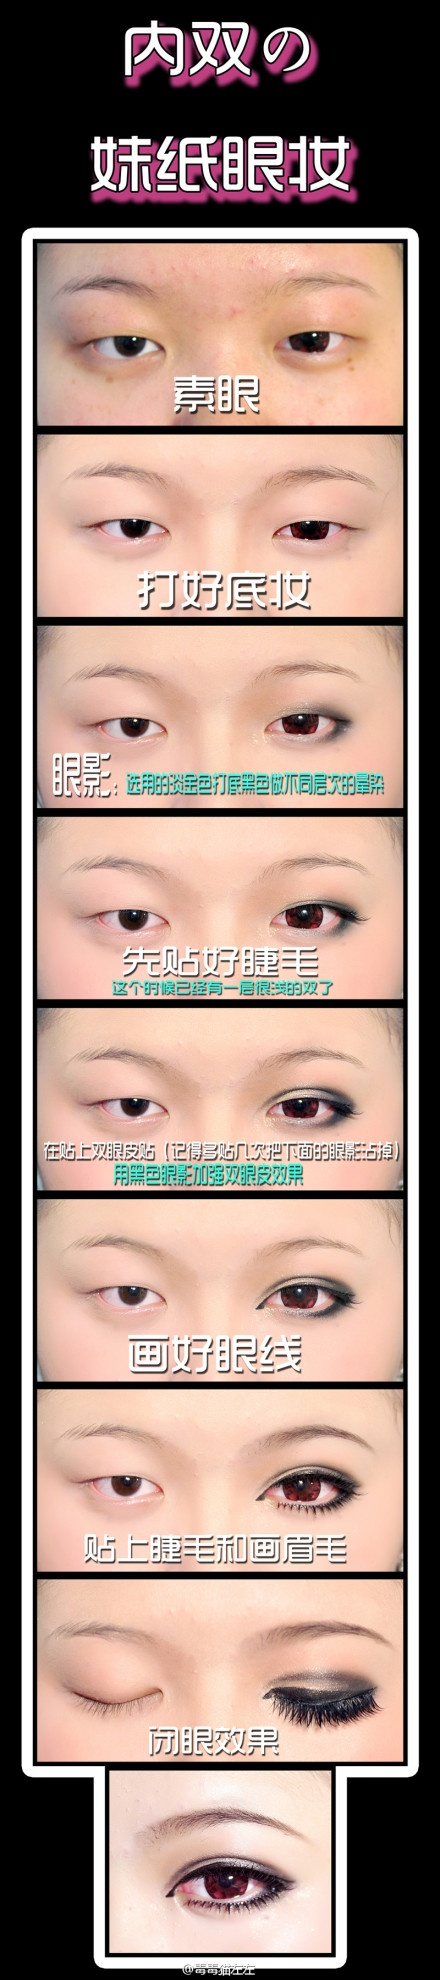 this actually freaks me out a bit... but crazy good fake double eye lid